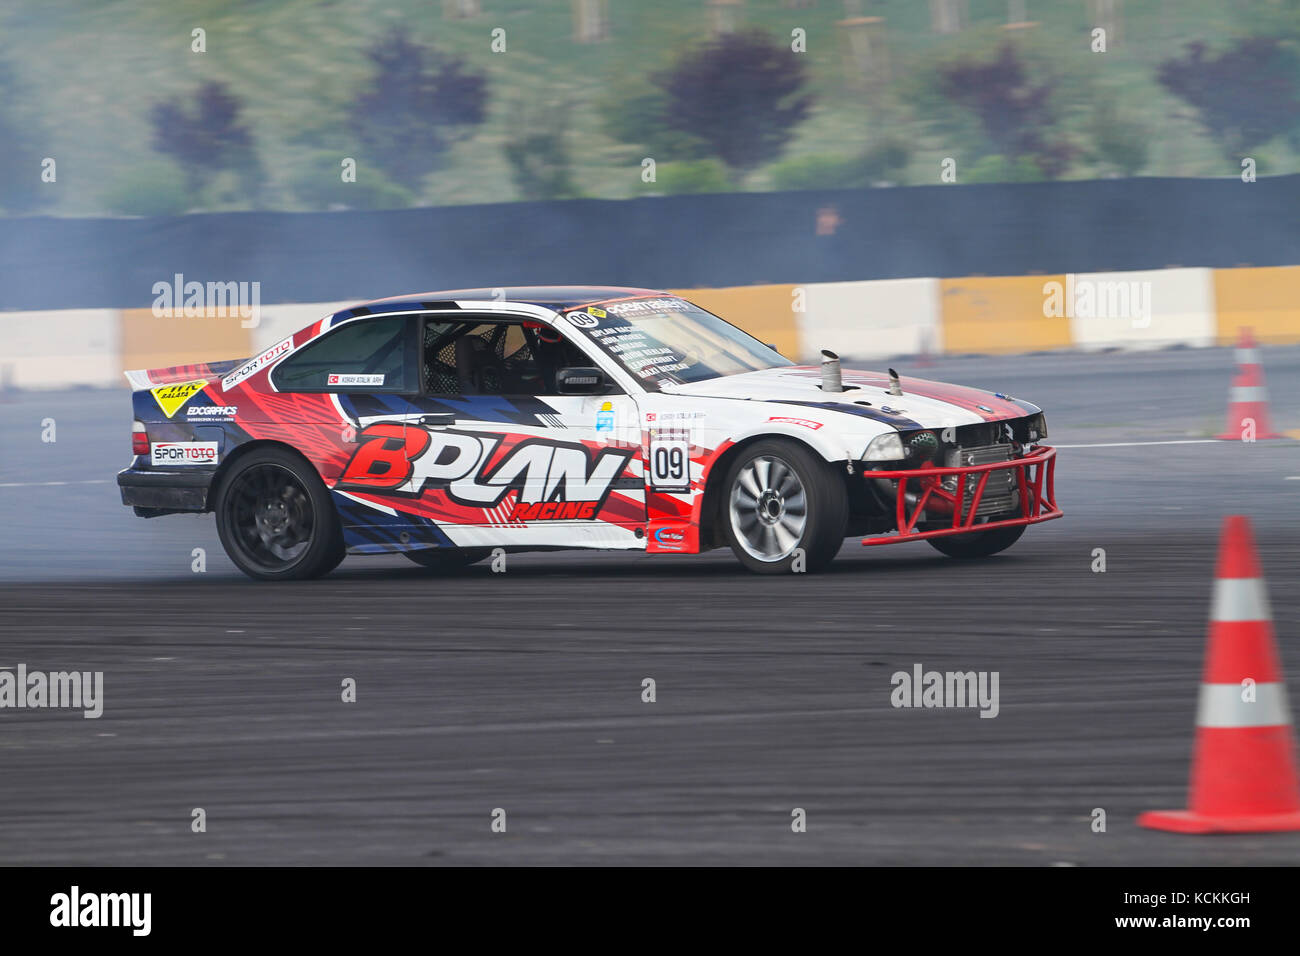 Bmw M3 Stock Photos & Bmw M3 Stock Images - Page 3 - Alamy